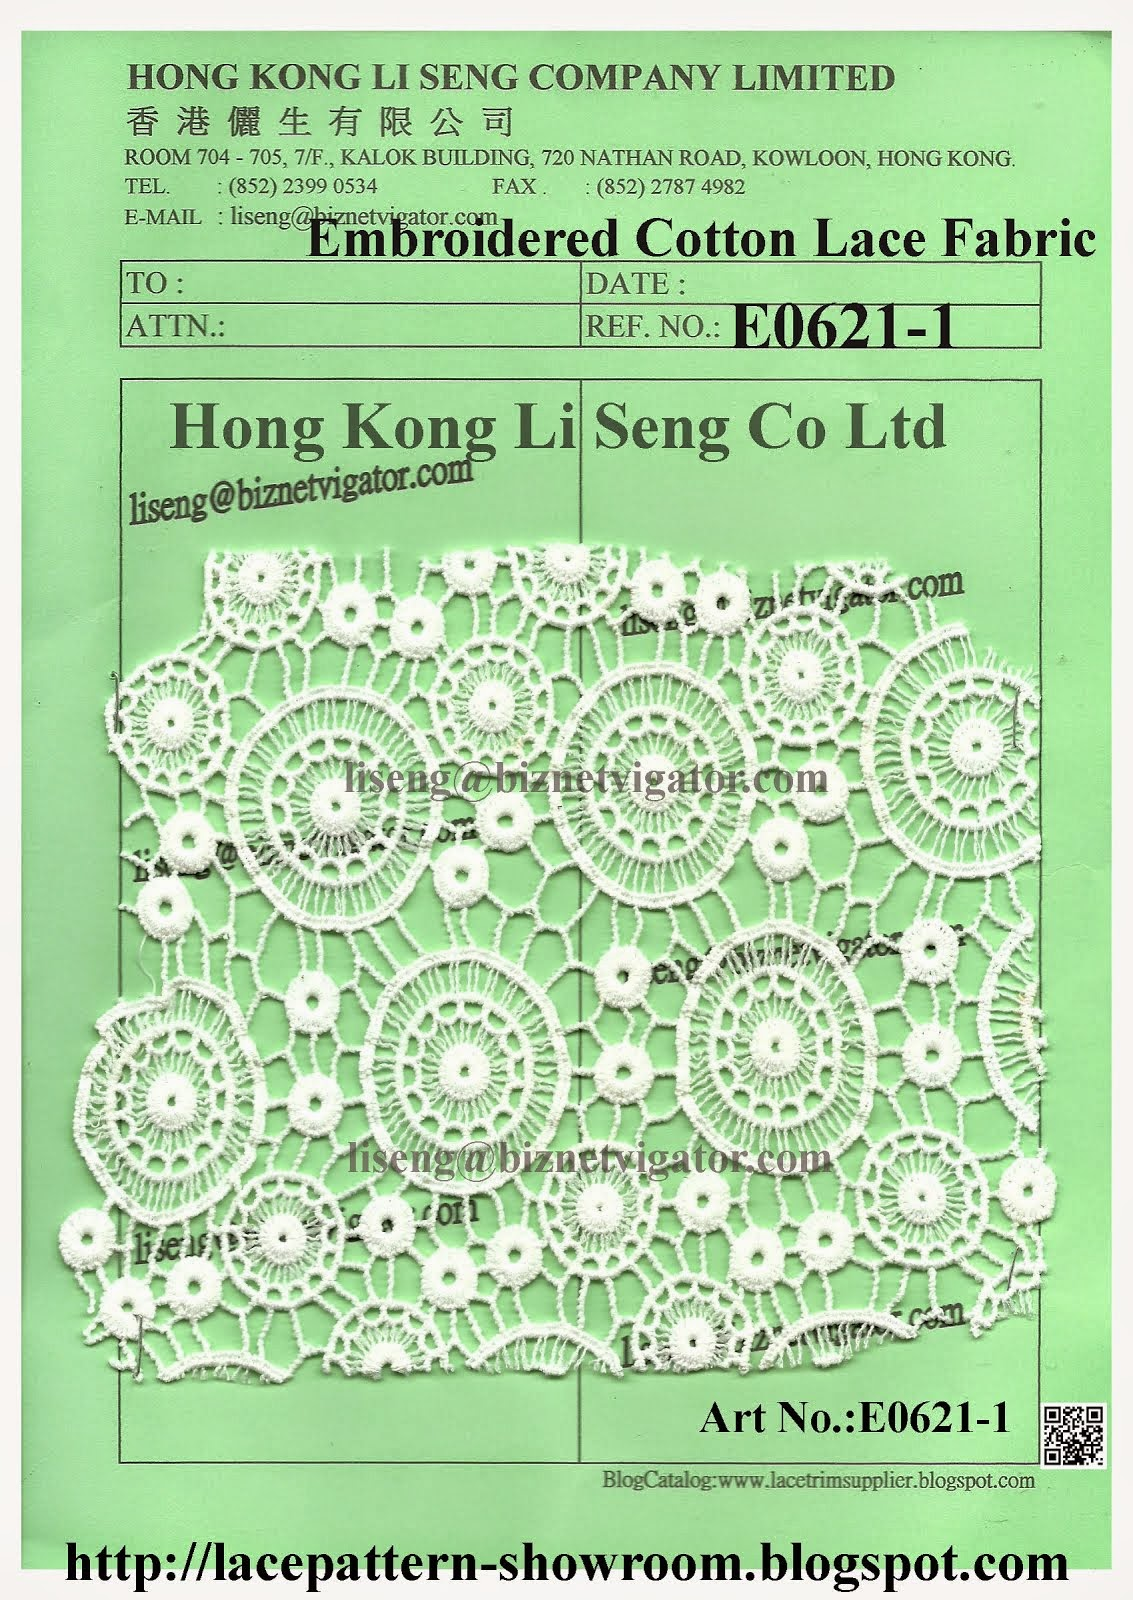 Embroidered Cotton Lace Fabric Wholesaler - Hong Kong Li Seng Co Ltd